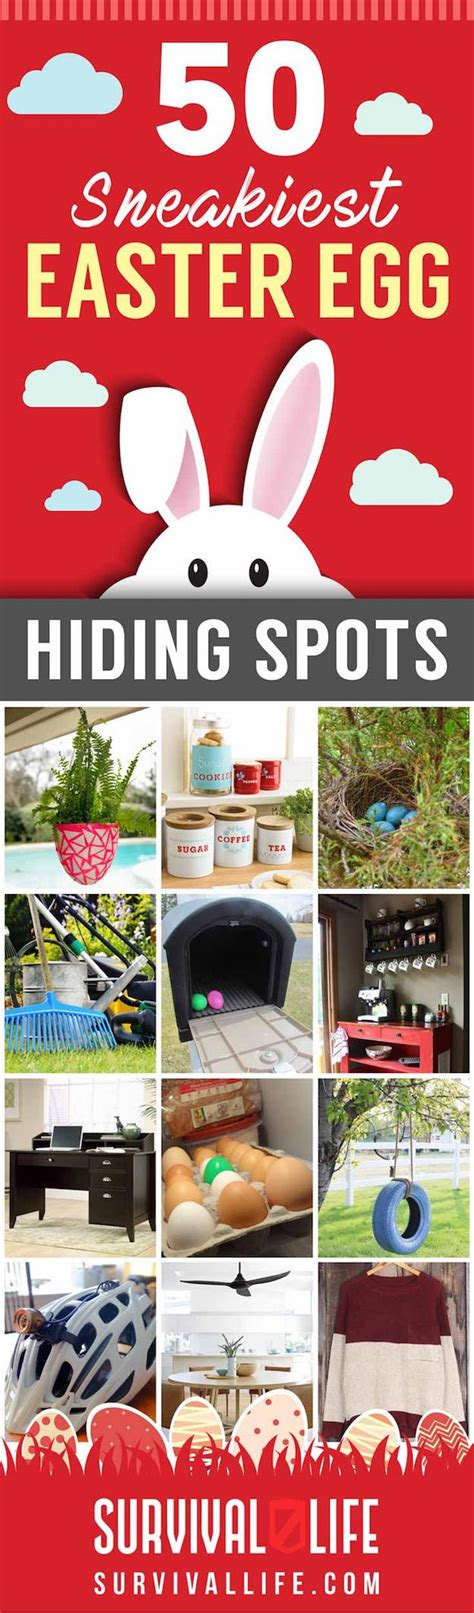 why do you hide eggs on easter 50 sneakiest easter egg hiding spots survival